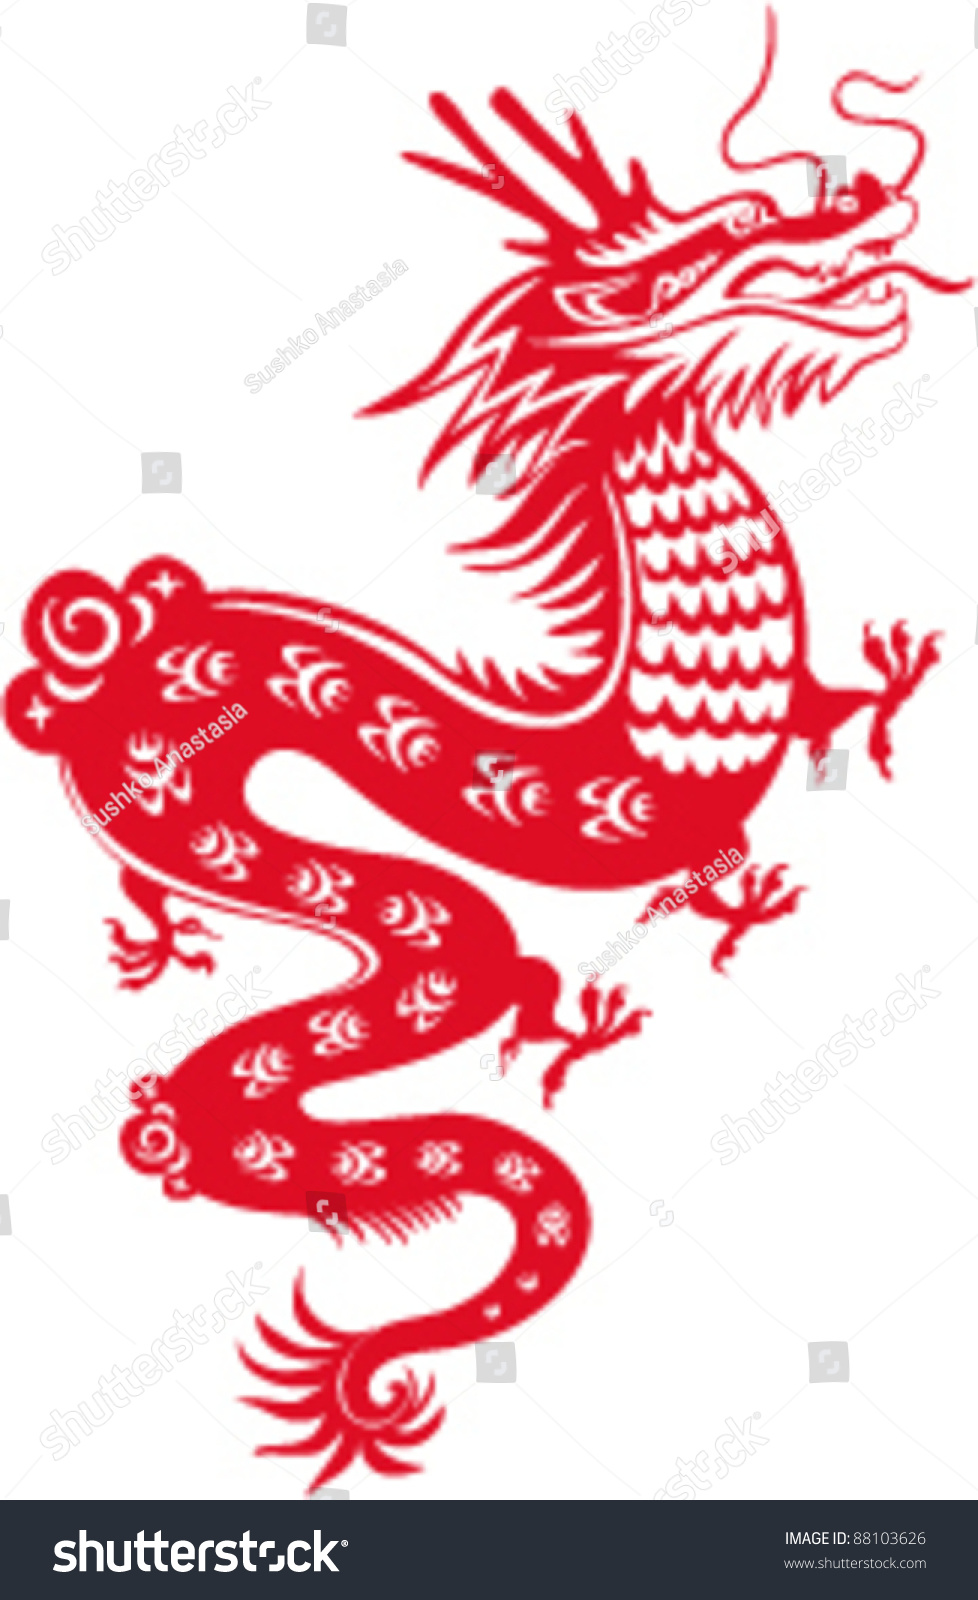 dragon year 2012 chinese zodiac symbol stock vector 88103626 shutterstock. Black Bedroom Furniture Sets. Home Design Ideas